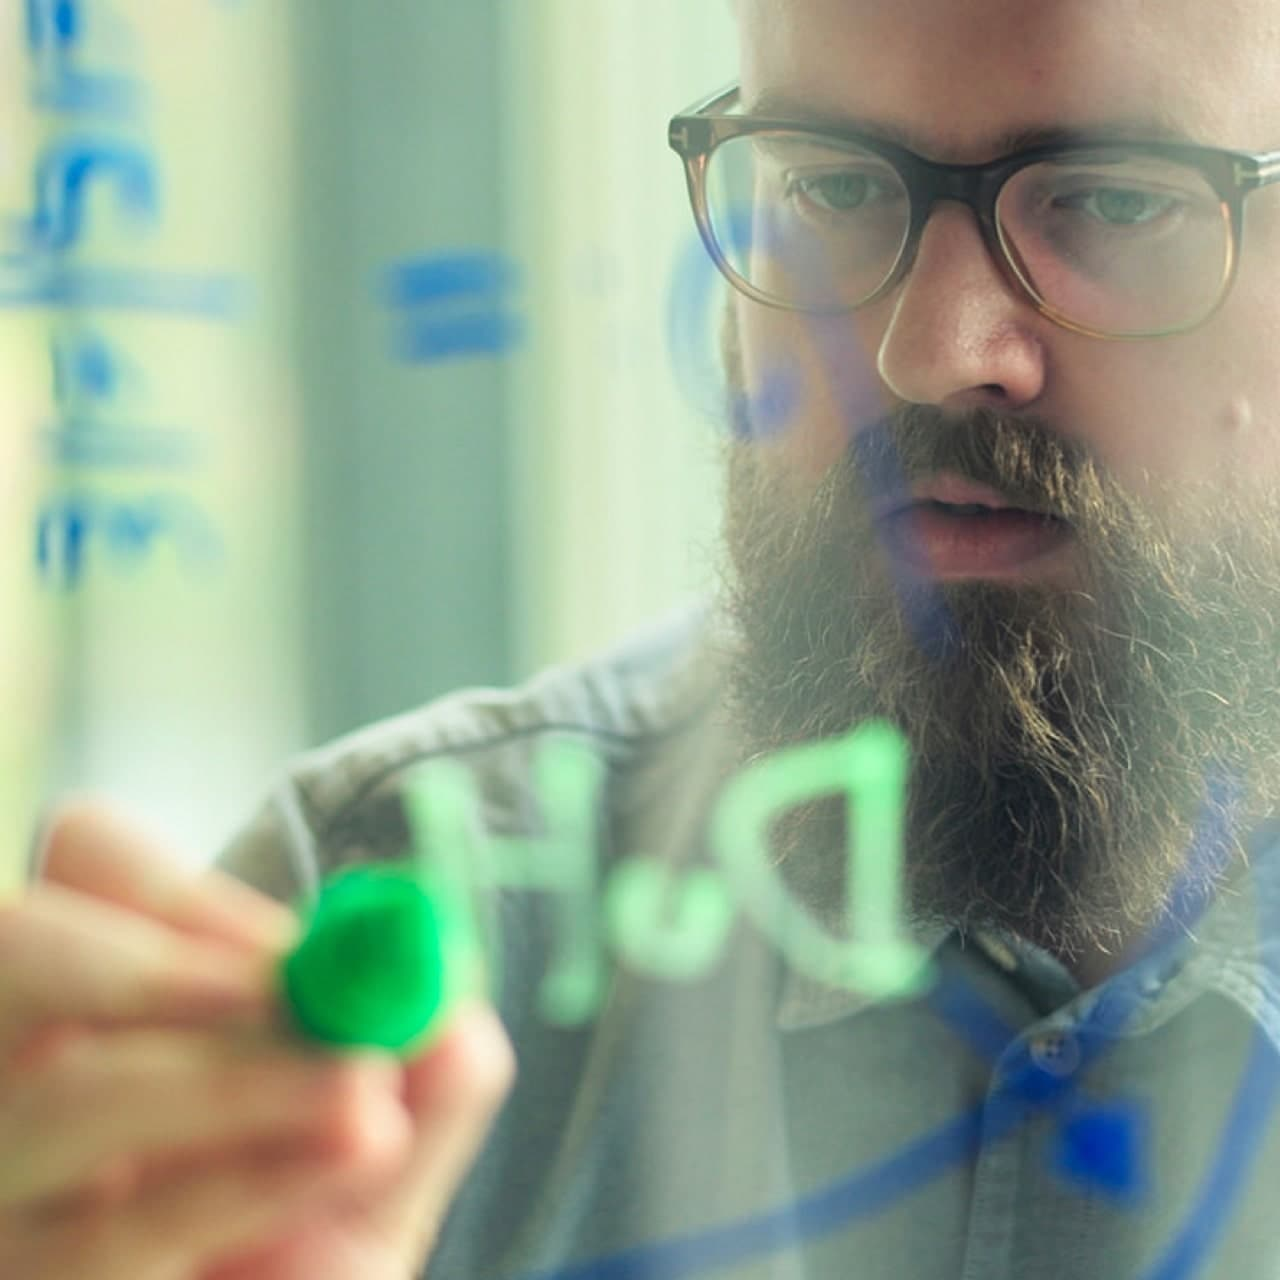 man wign a beard and wearing glasses writting on a glass panel